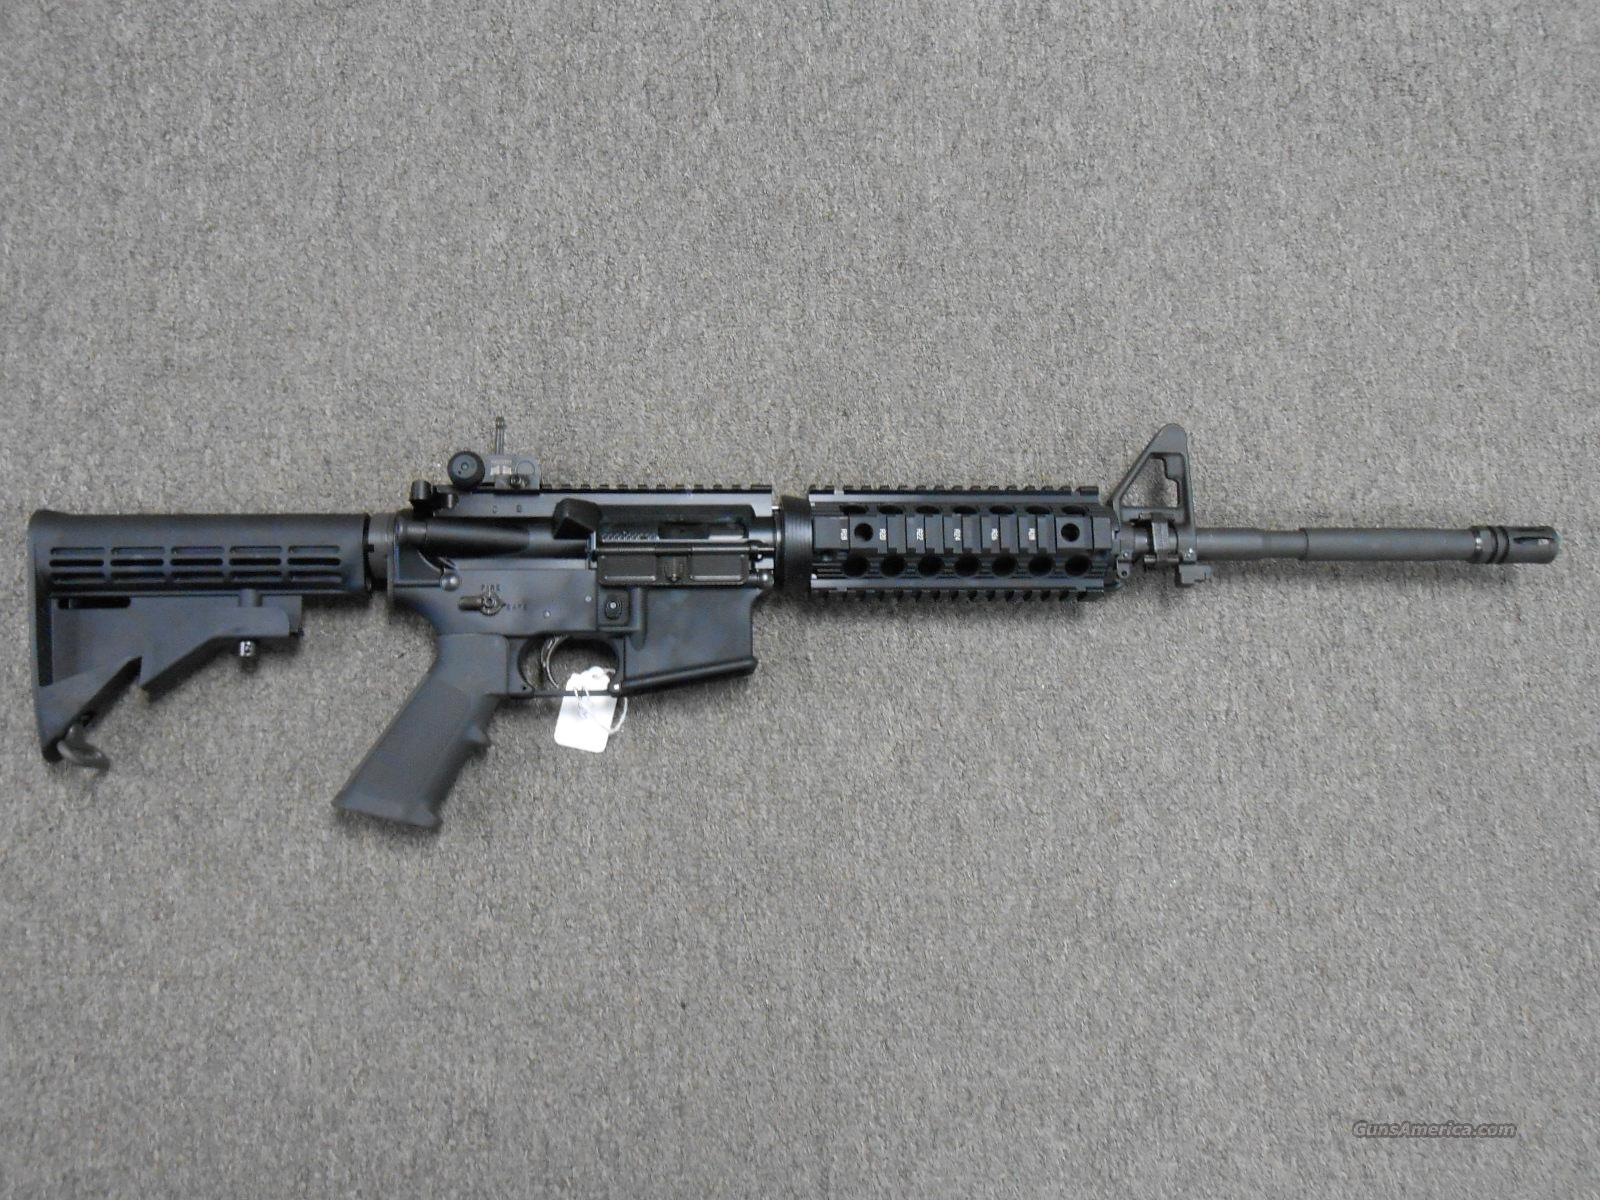 Colt LE6920 Socom M4 5.56 NIB! No CC Fees!  Guns > Rifles > Colt Military/Tactical Rifles